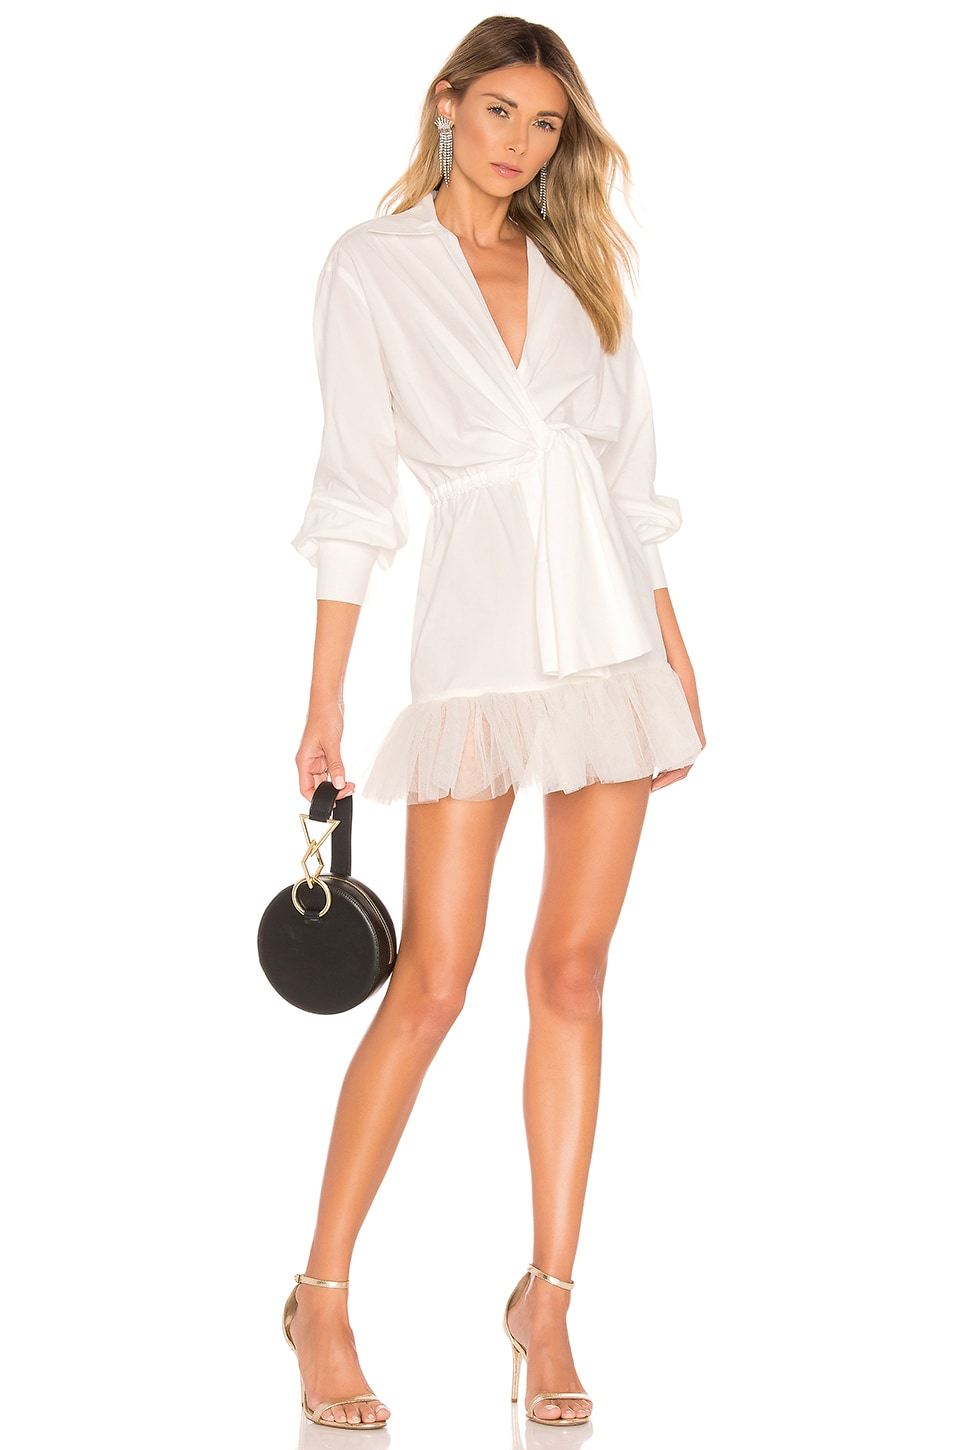 BROGNANO Shirt Dress in White